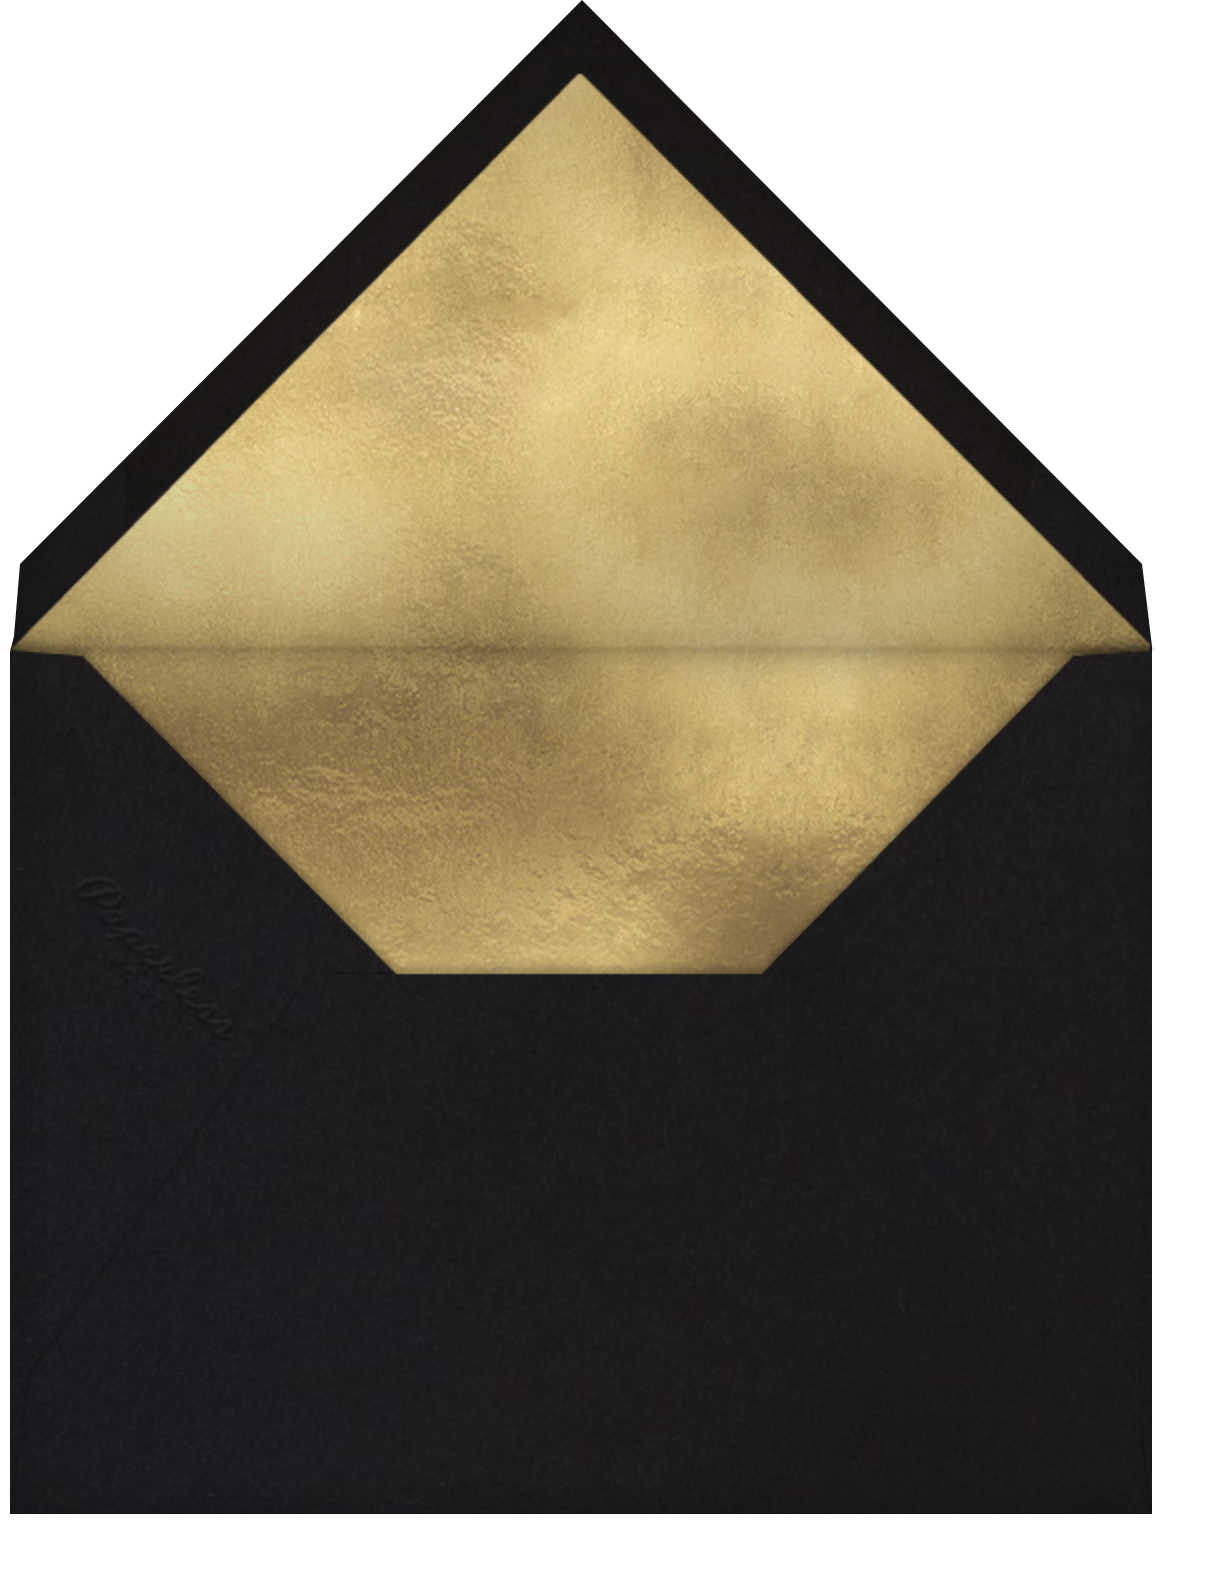 Sweater Twinset - His/His - Paperless Post - New Year's Eve - envelope back